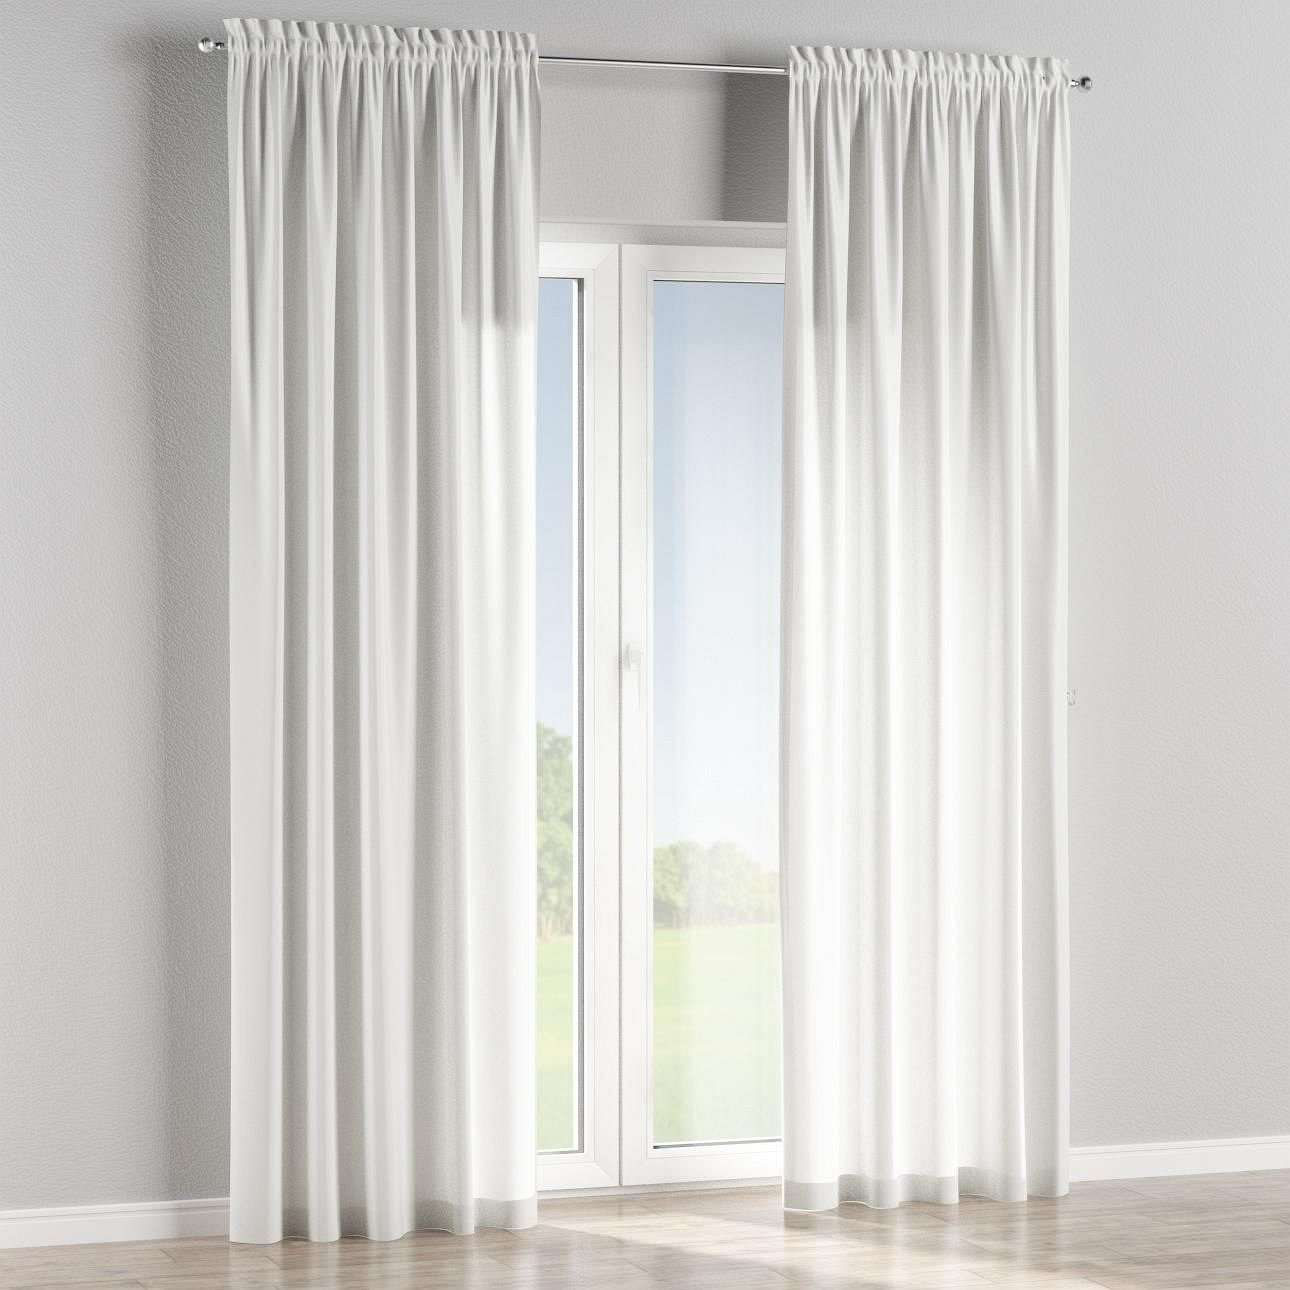 Slot and frill lined curtains in collection SALE, fabric: 135-04